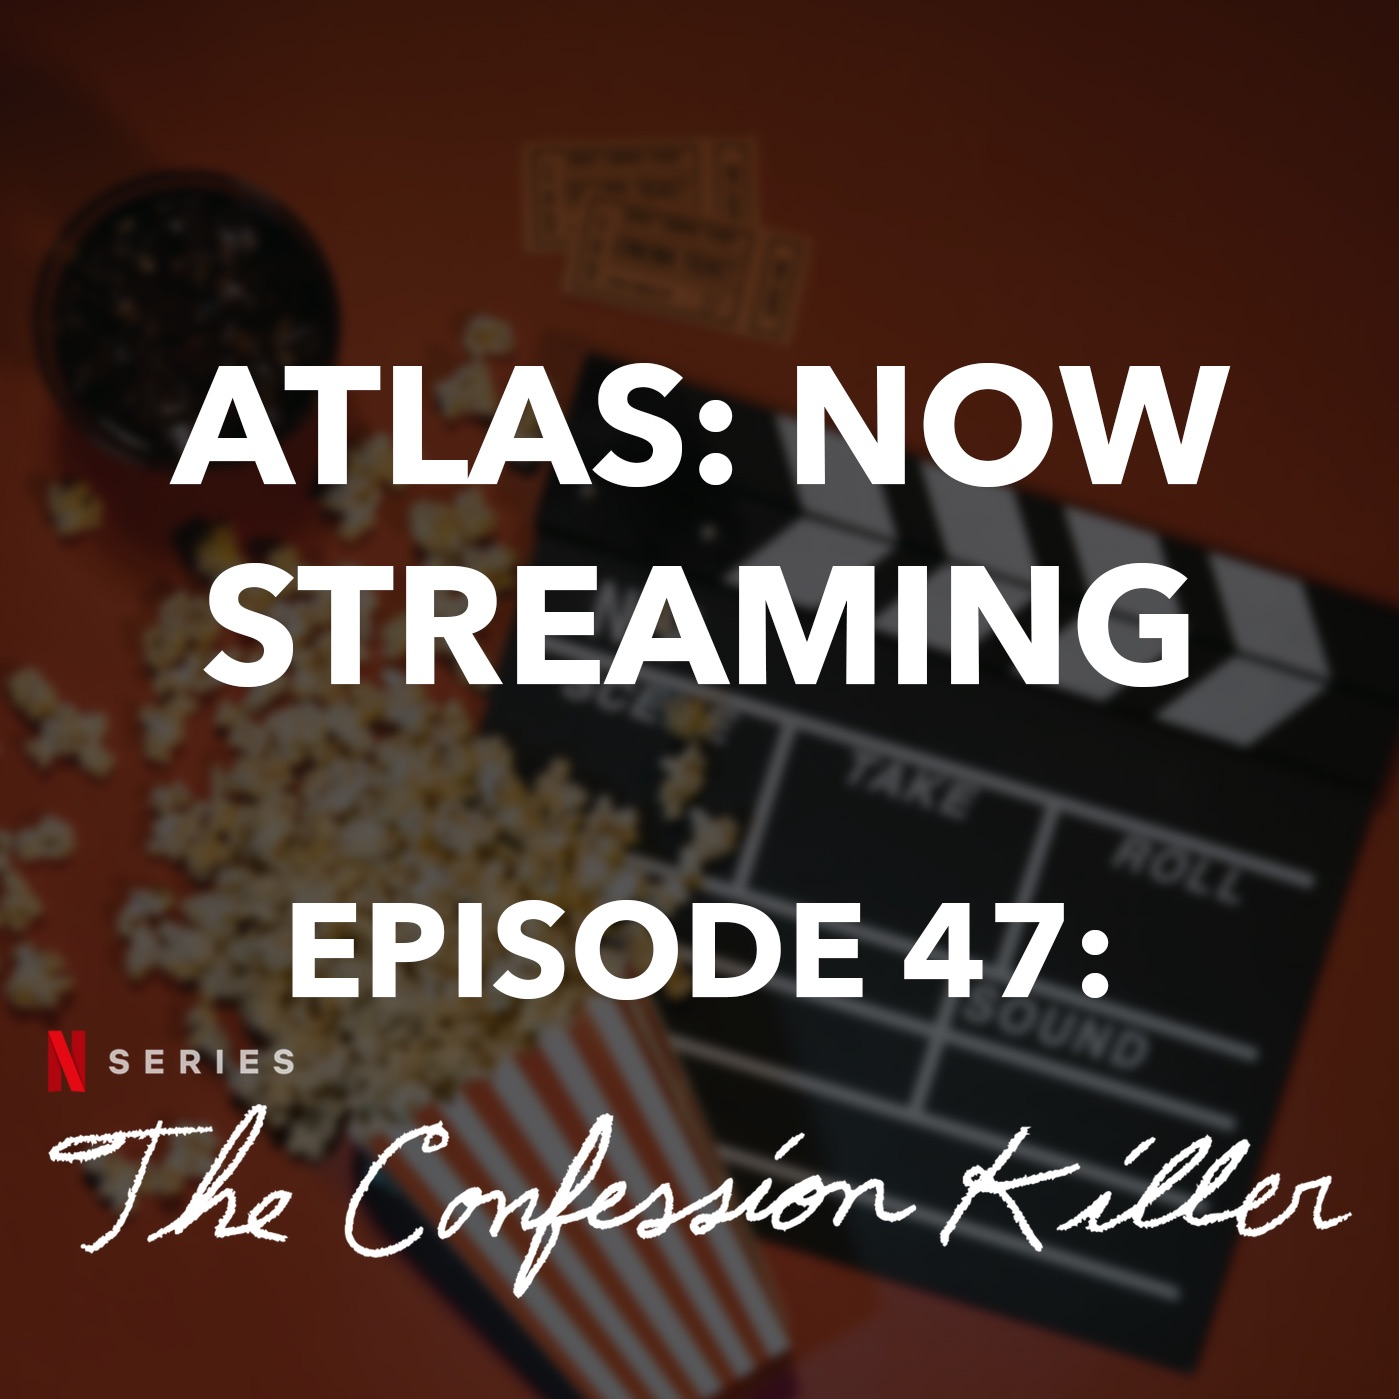 The Confession Killer - Atlas: Now Streaming Episode 47